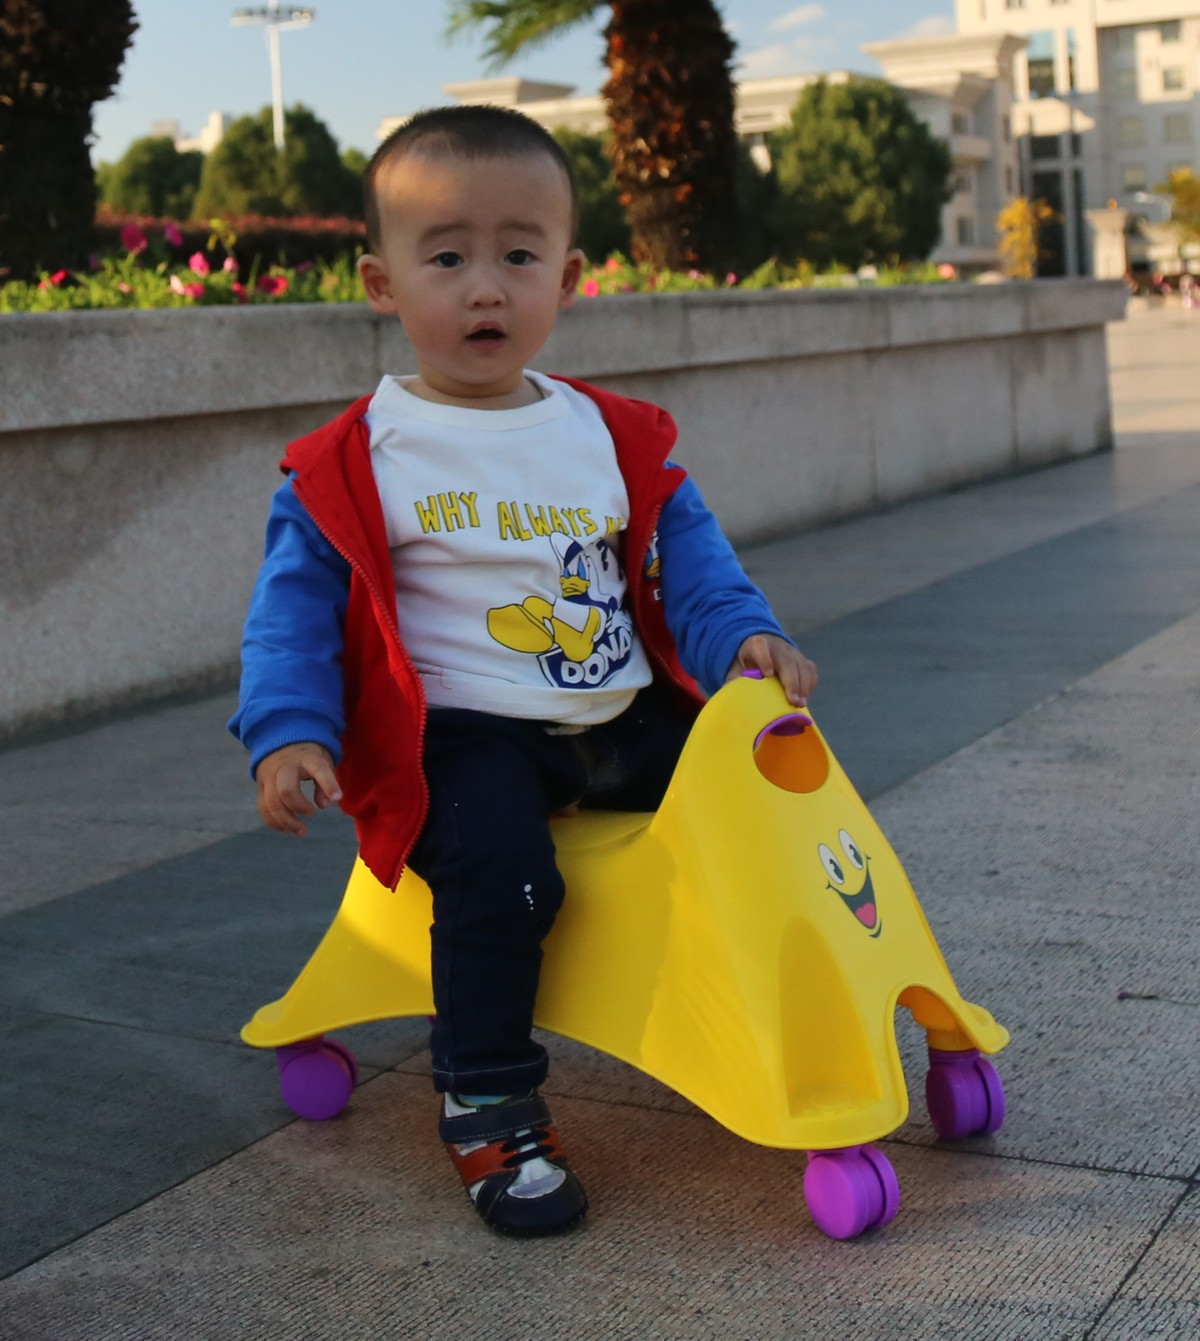 tingjin ride on toys,tingjin kids ride on toy